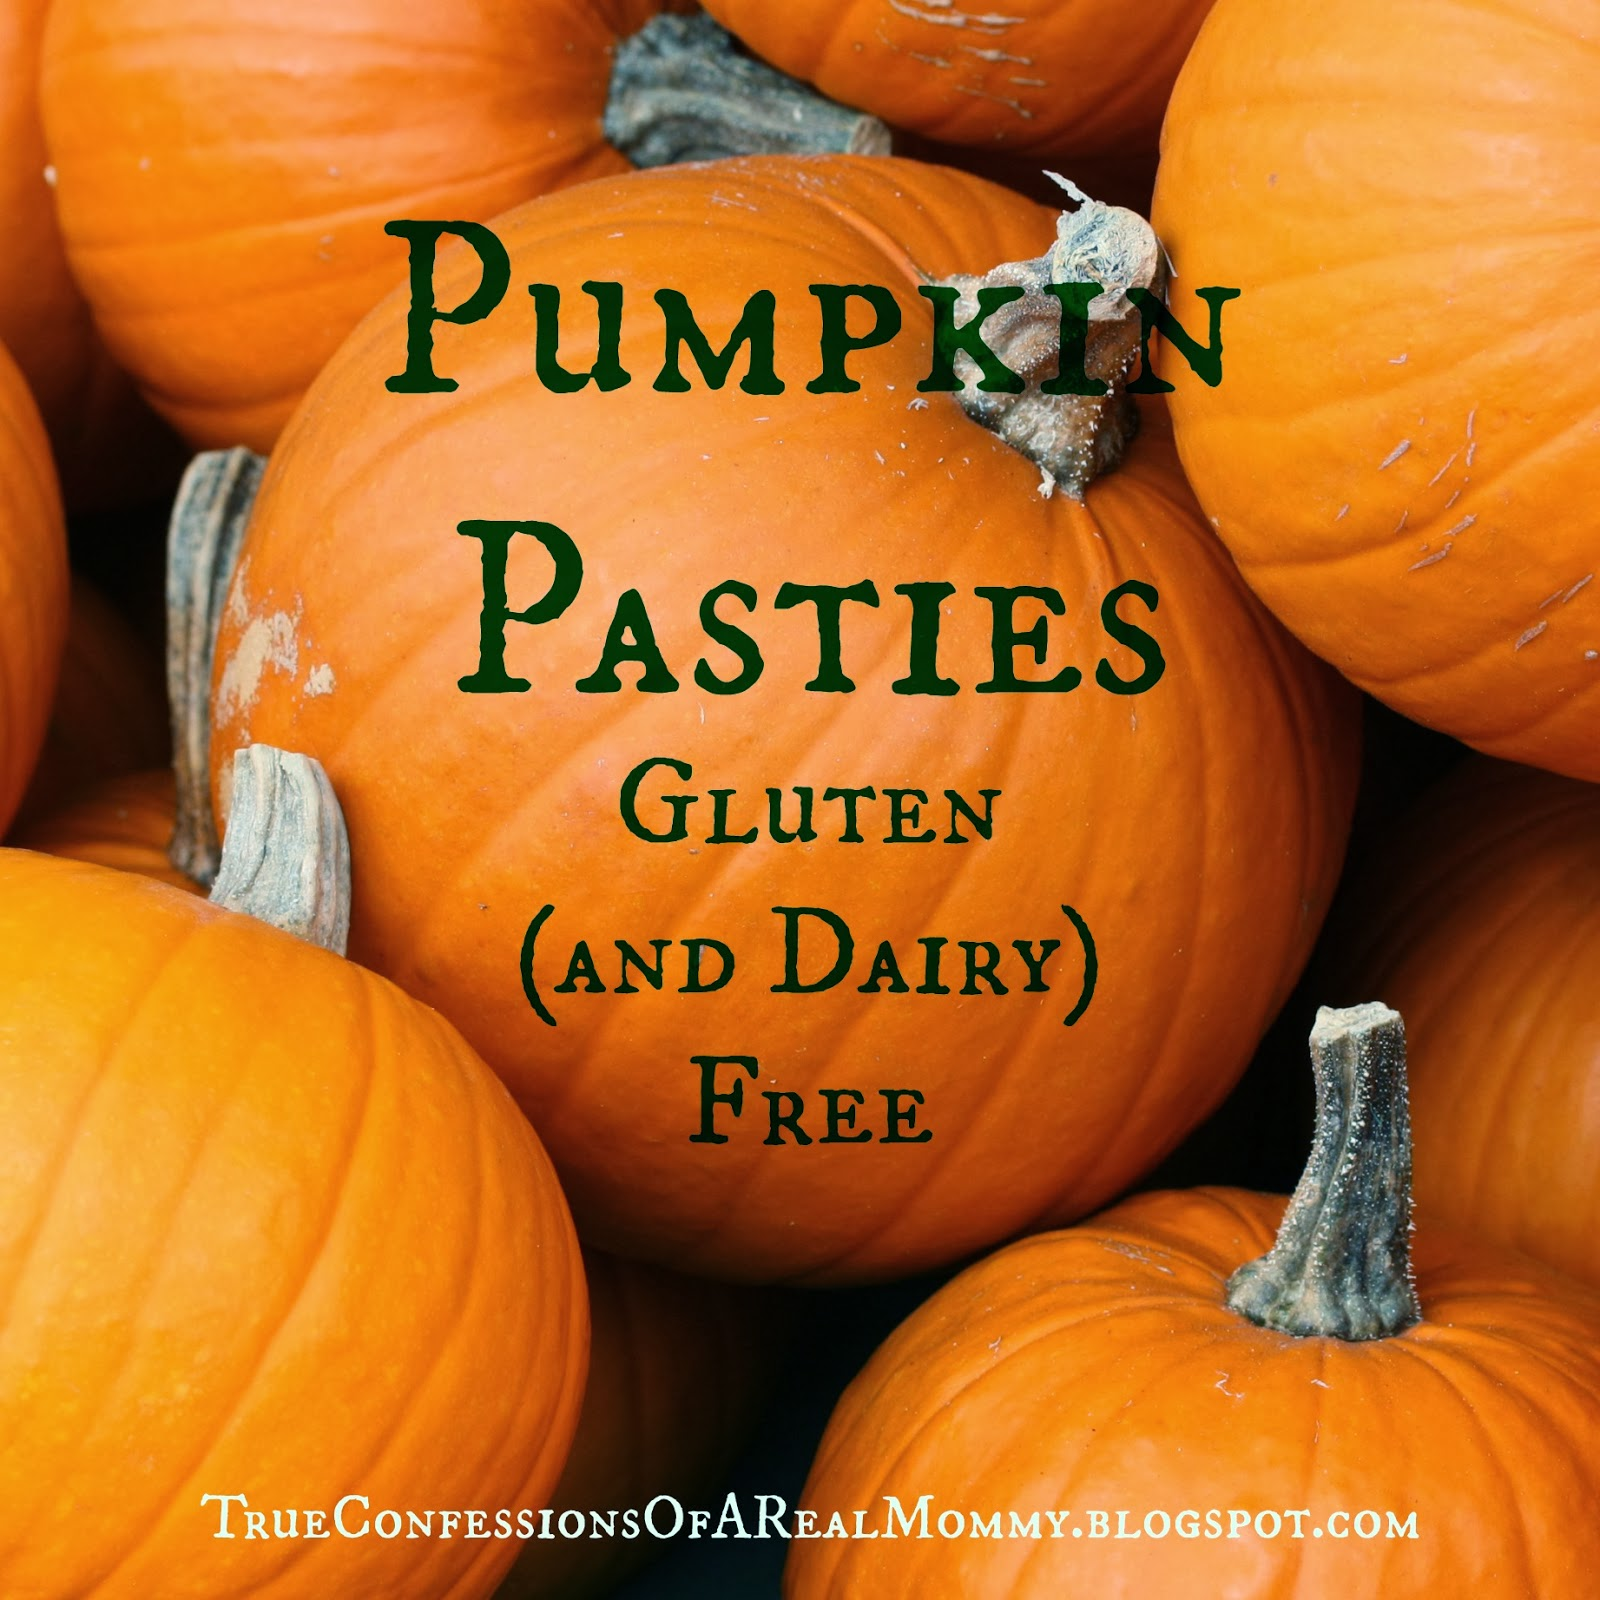 True Confessions of a Real Mommy: Geek Food: Pumpkin Pasties